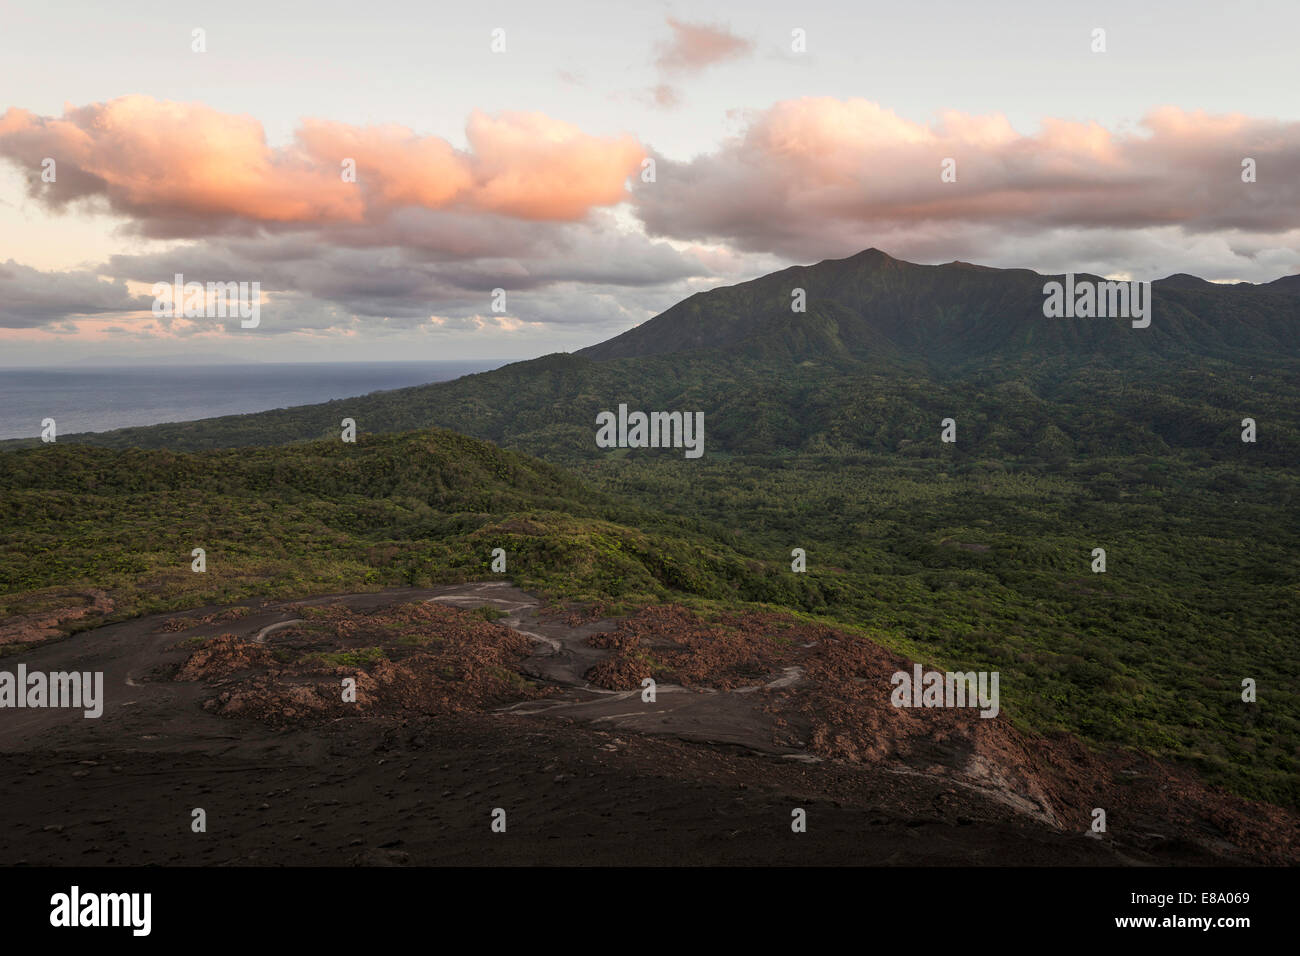 View from the crater of Mount Yasur volcano onto the sea in the morning light, Tanna Island, Vanuatu - Stock Image